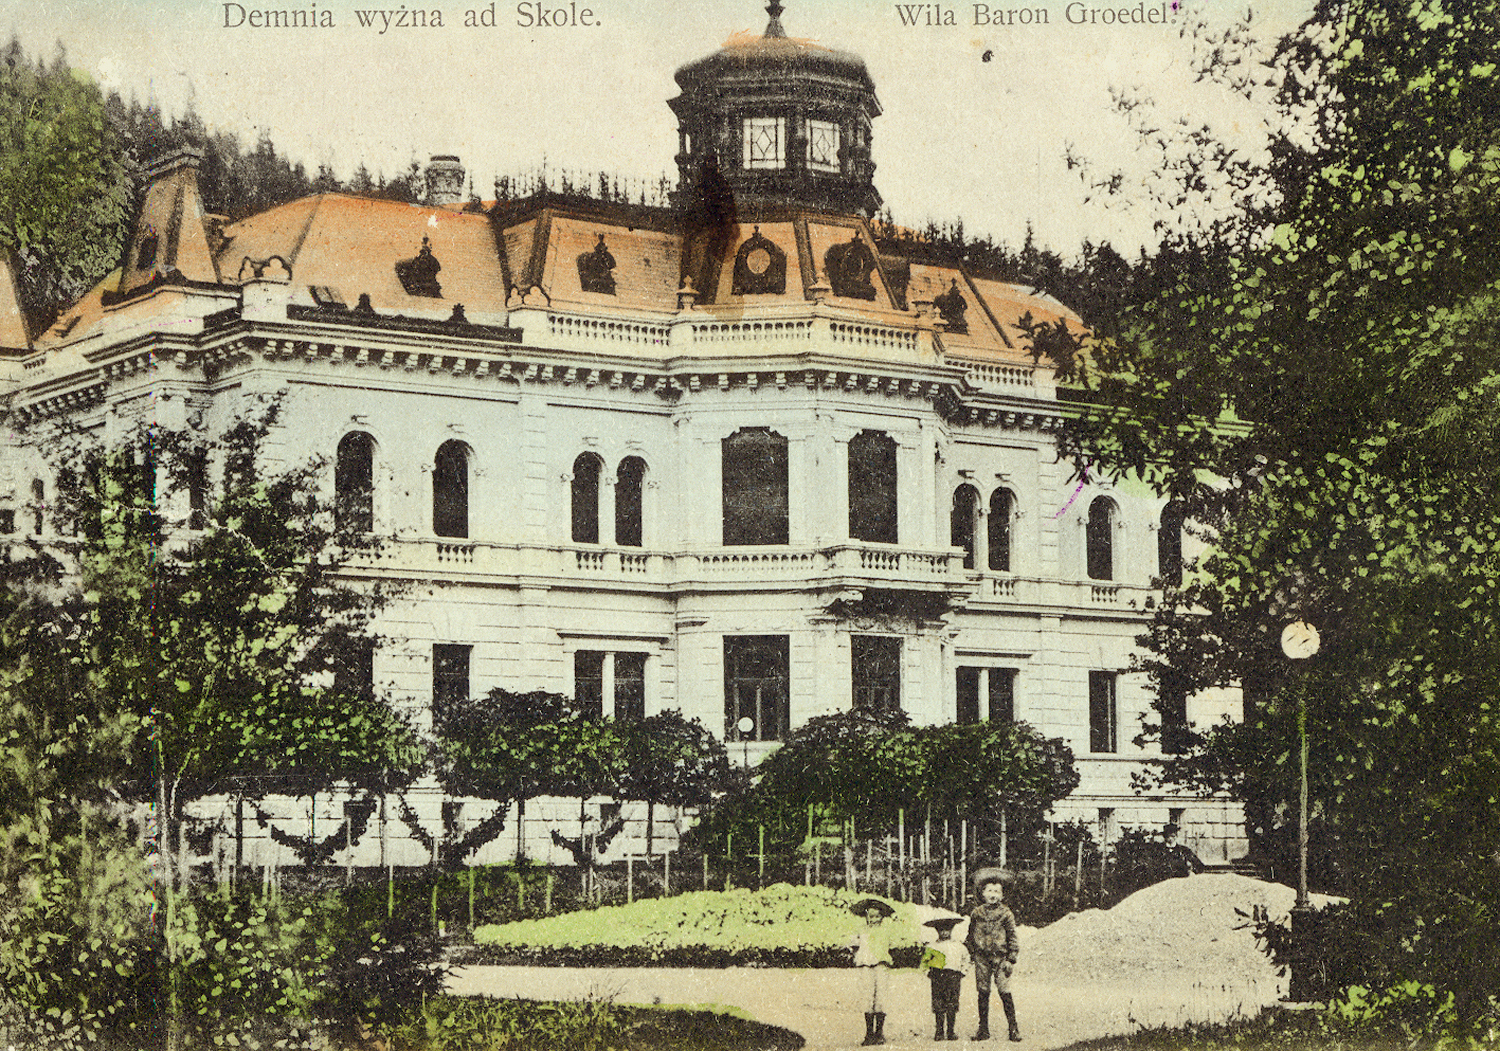 Barons and Peasants: Unapparent Jews in the Mental and Physical Spaces of the Carpathians